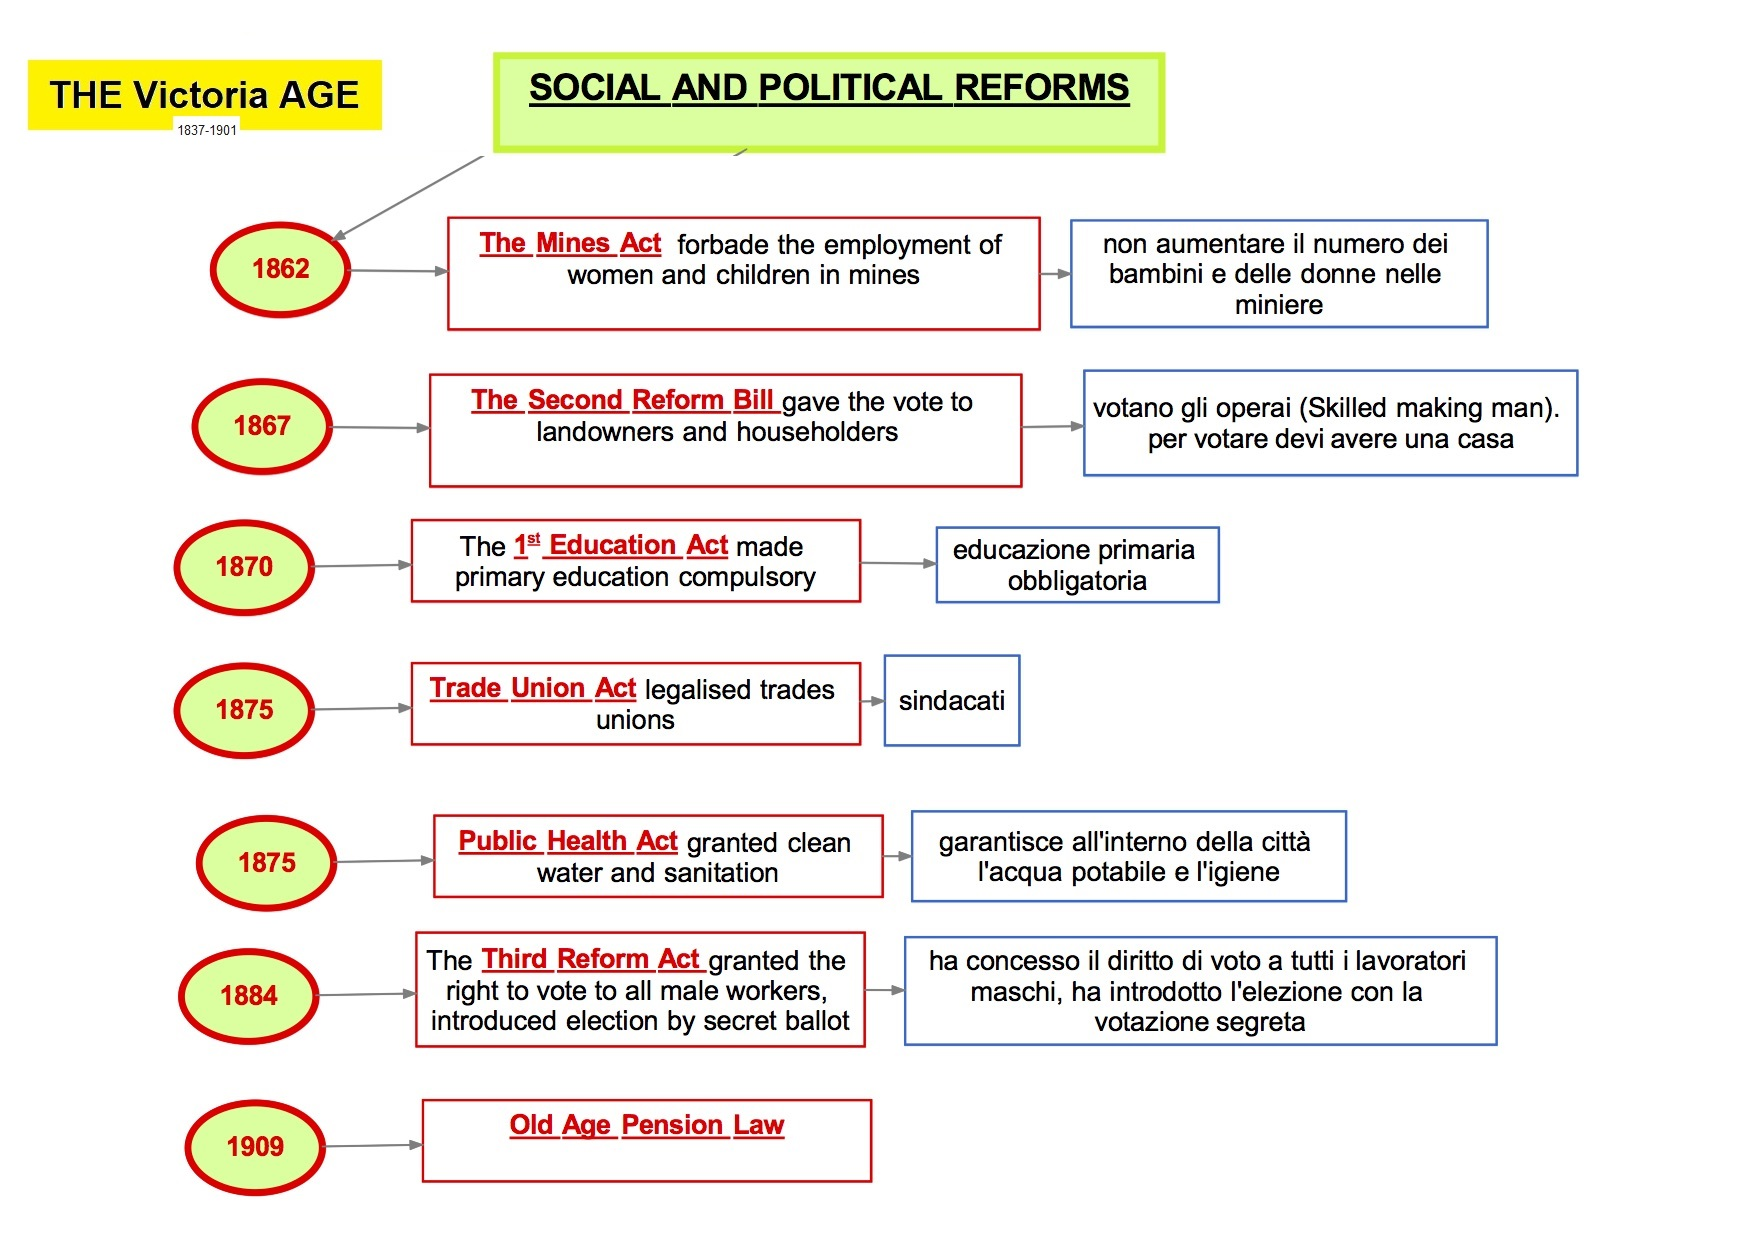 mappa concettuale visual map Inglese THE Victoria AGE SOCIAL AND POLITICAL REFORMS